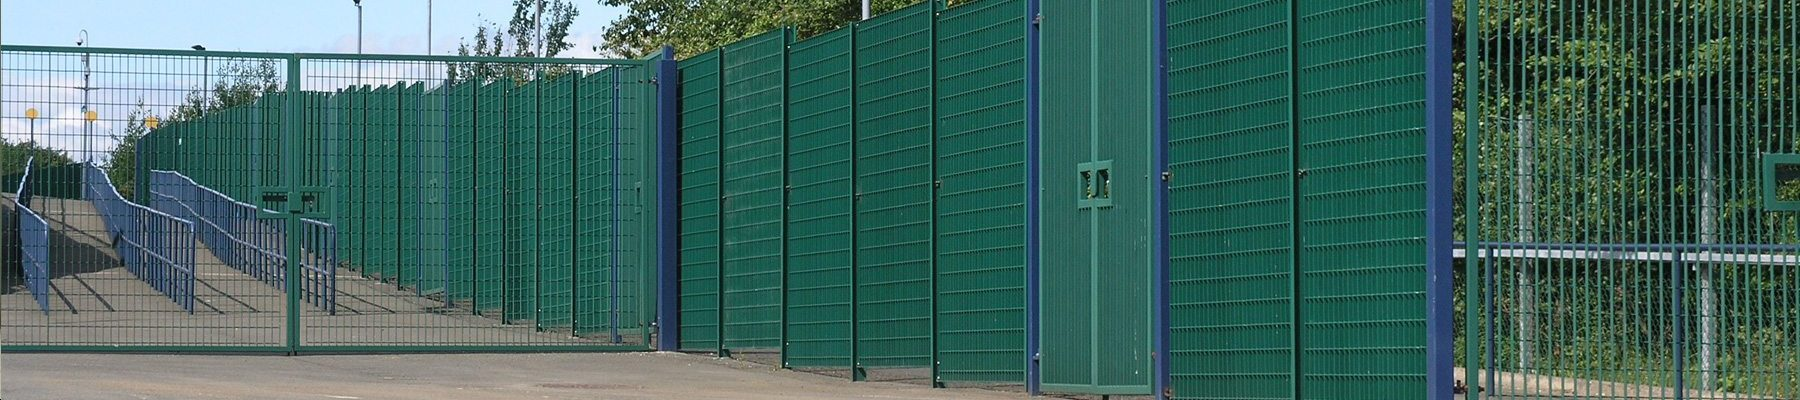 banner-HS-security-fencing-Hampden-Park-Stadium